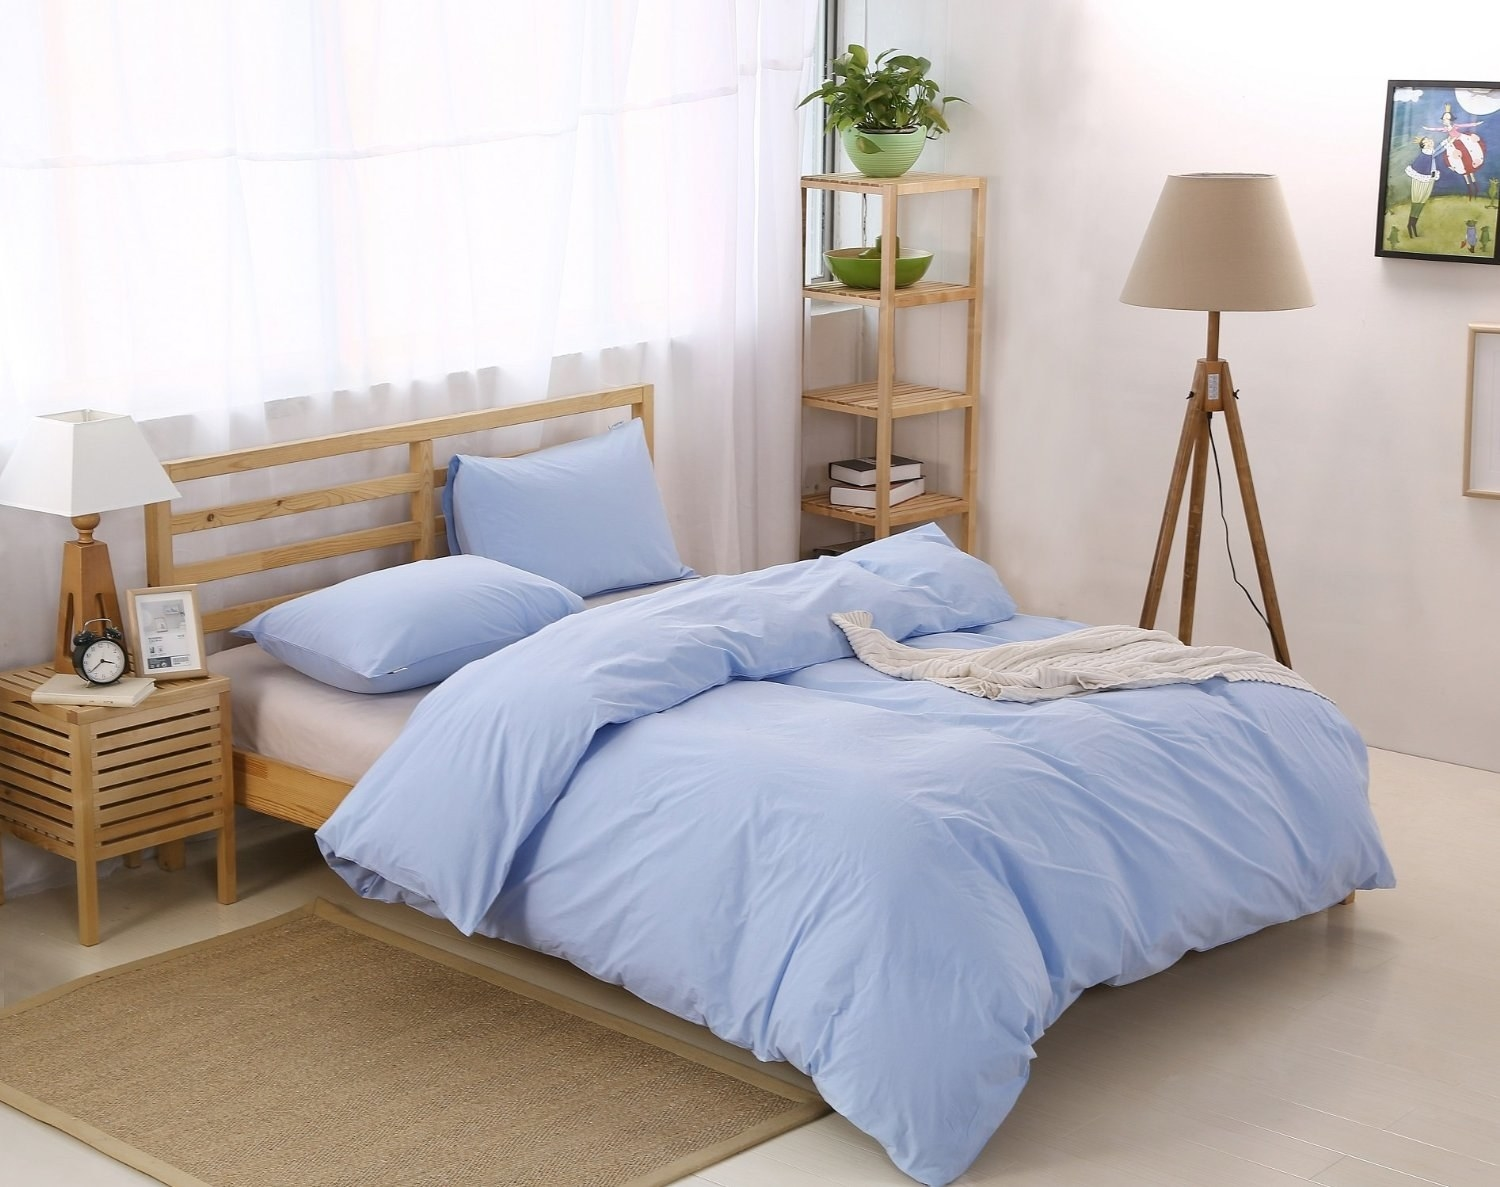 A Natural, Fade Resistant, Washed Cotton Duvet Cover Set That Comes In Six  Different Colors.